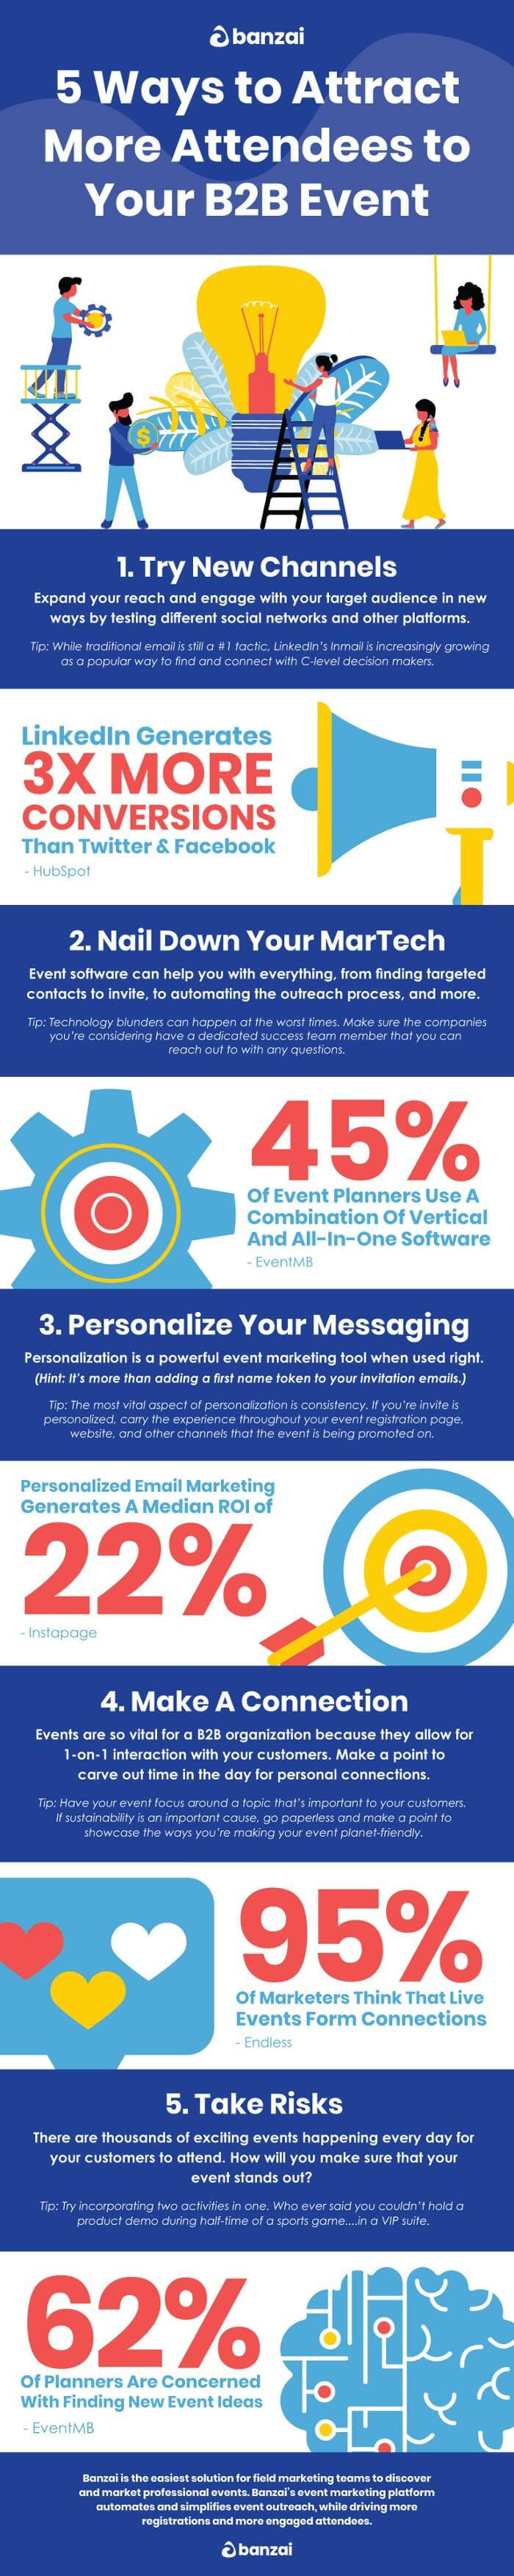 Infographic about attracting event attendees